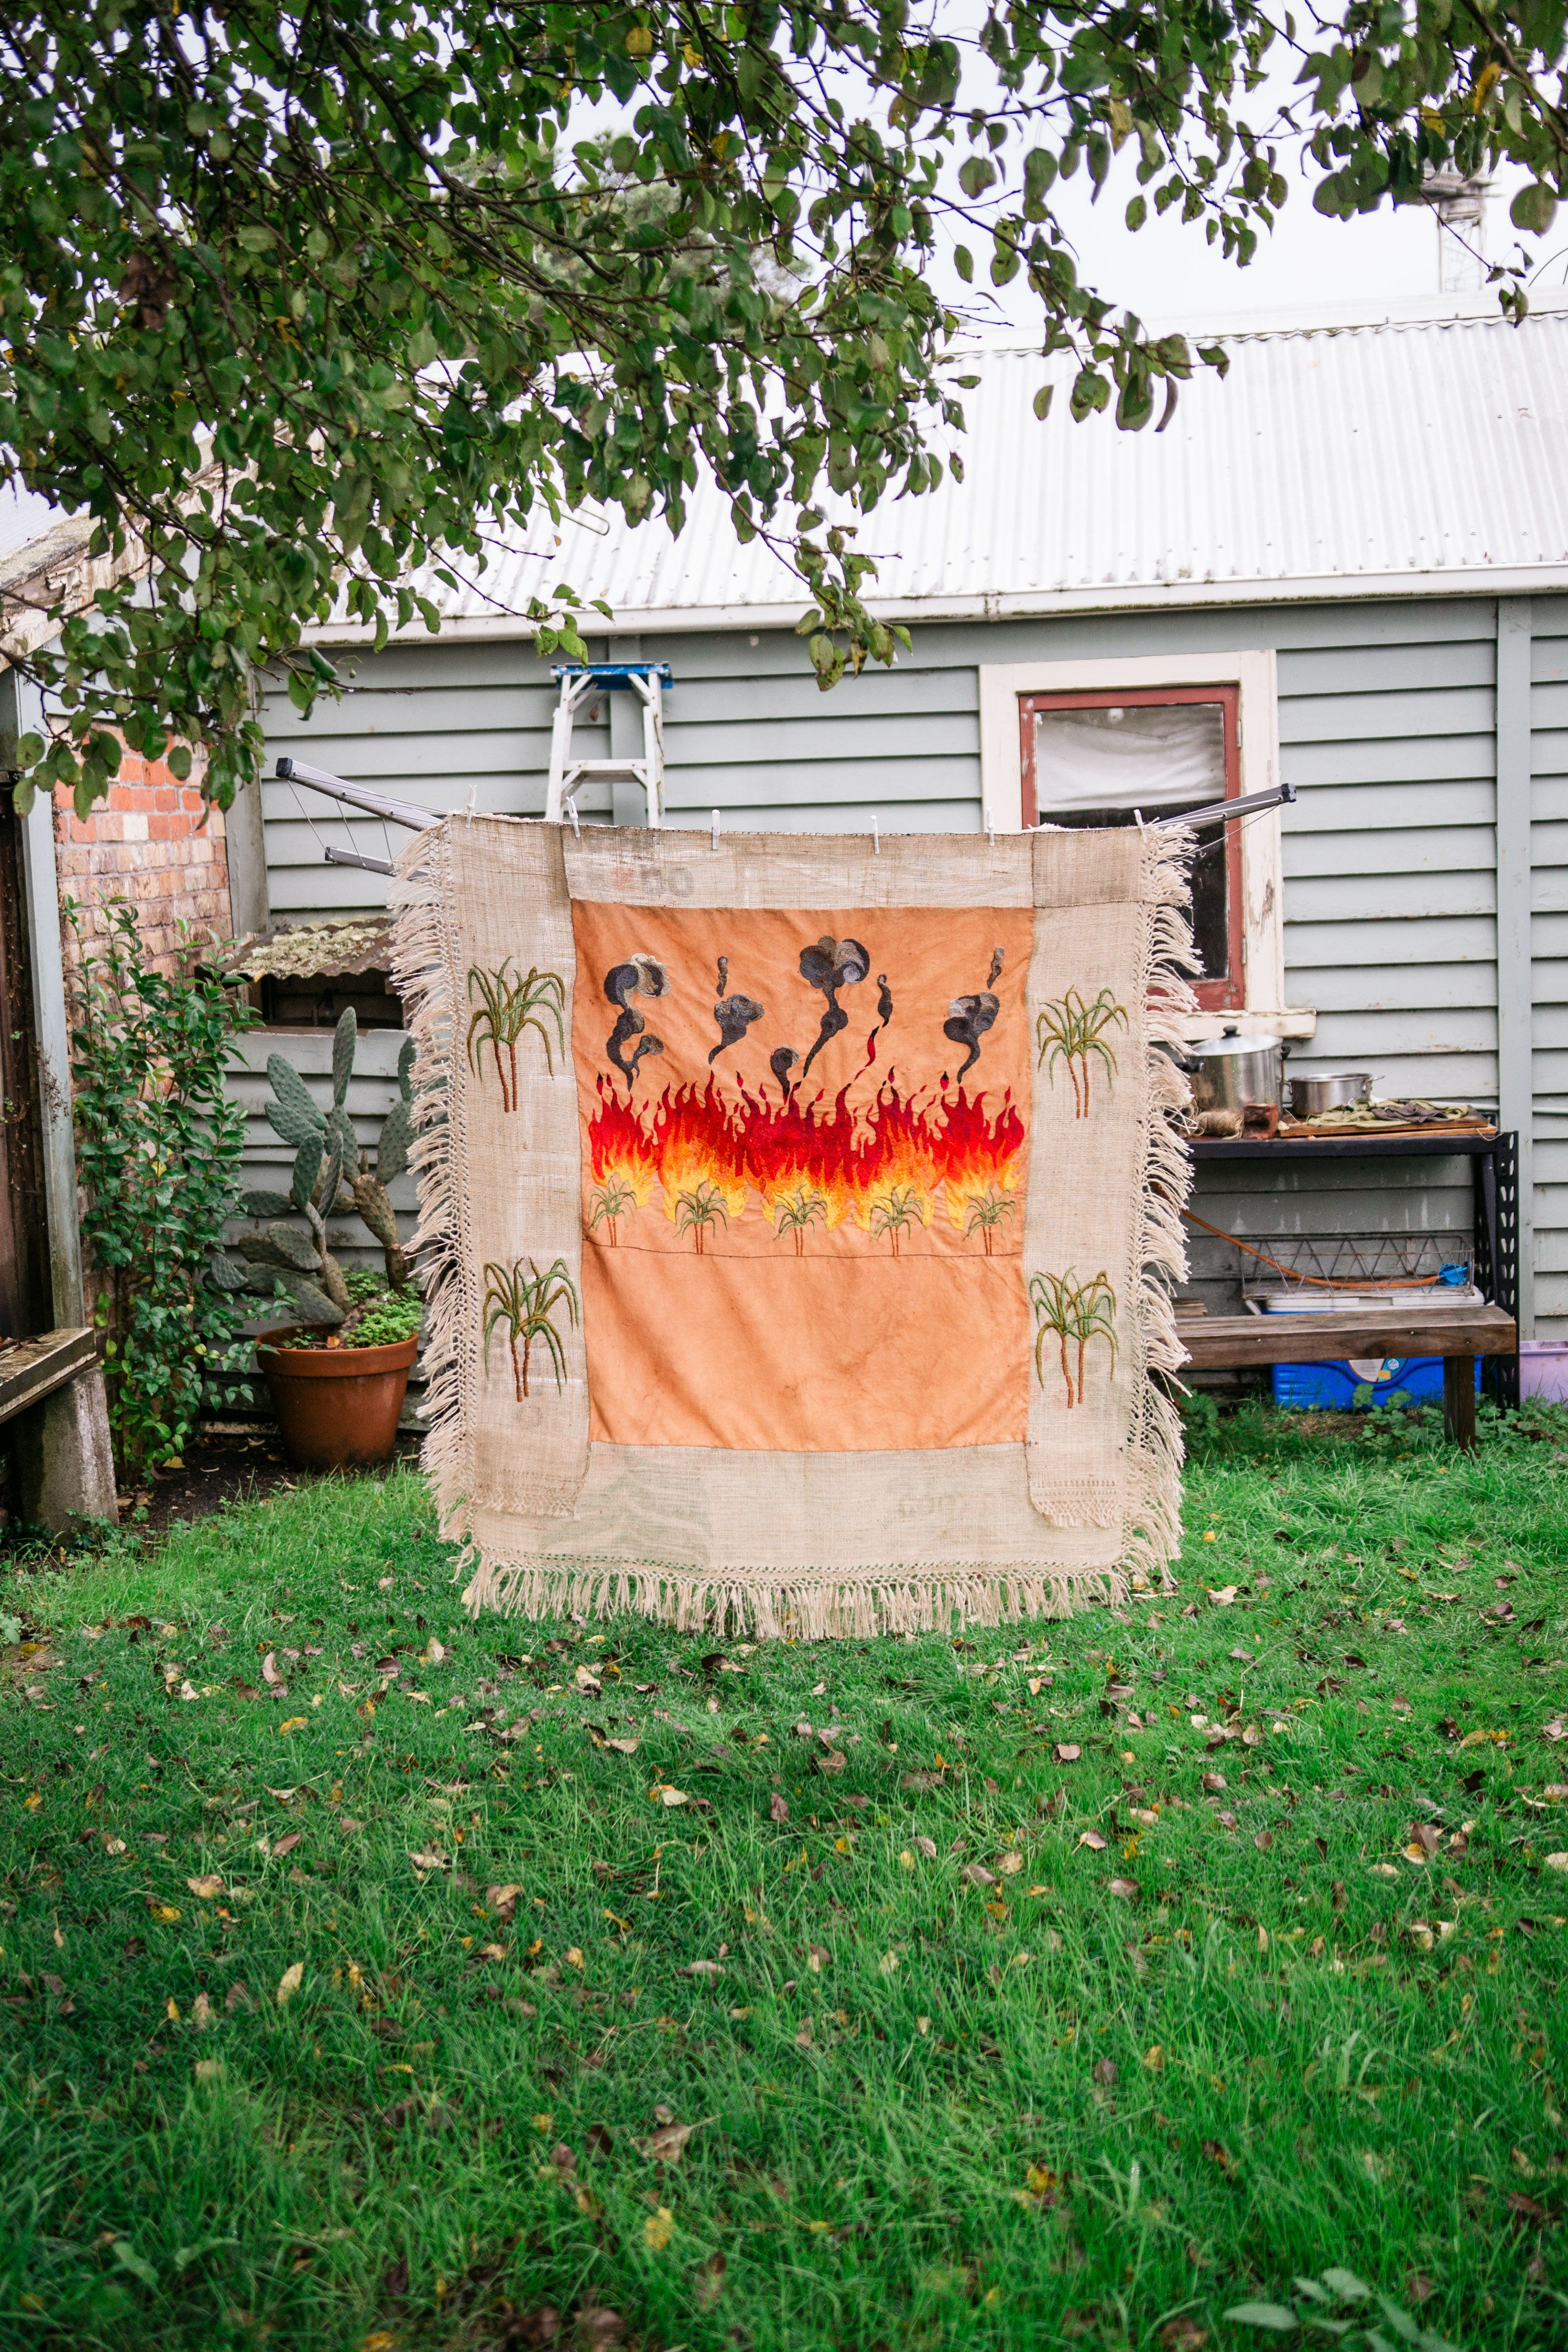 Quishile Charan, Burning Ganna Khet (Burning Sugarcane Farm), 2021, 153cm by 152cm, production still. Technique: hand dyed textile, embroidery thread, cotton, hessian sacks. Textile is naturally dyed with avocado seeds. Image by Matavai Taulangau